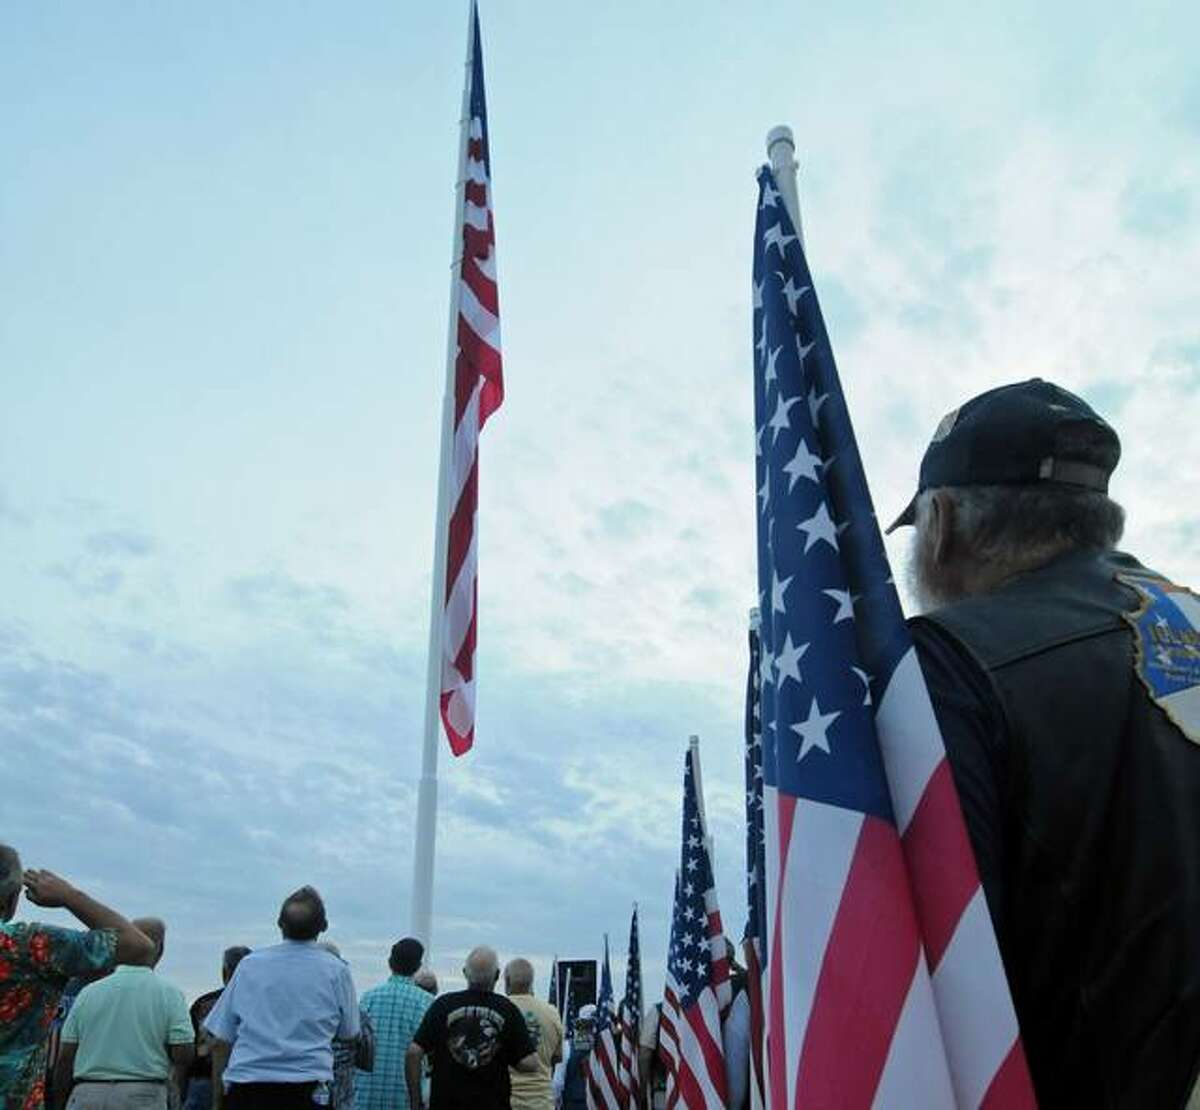 Grafton officials and American Legion Post 648 will host a 9/11 ceremony at 8:30 a.m. Saturday, Sept. 11, by the large American flag on the Grafton riverfront. Several communities and veterans organizations are planning events this weekend.